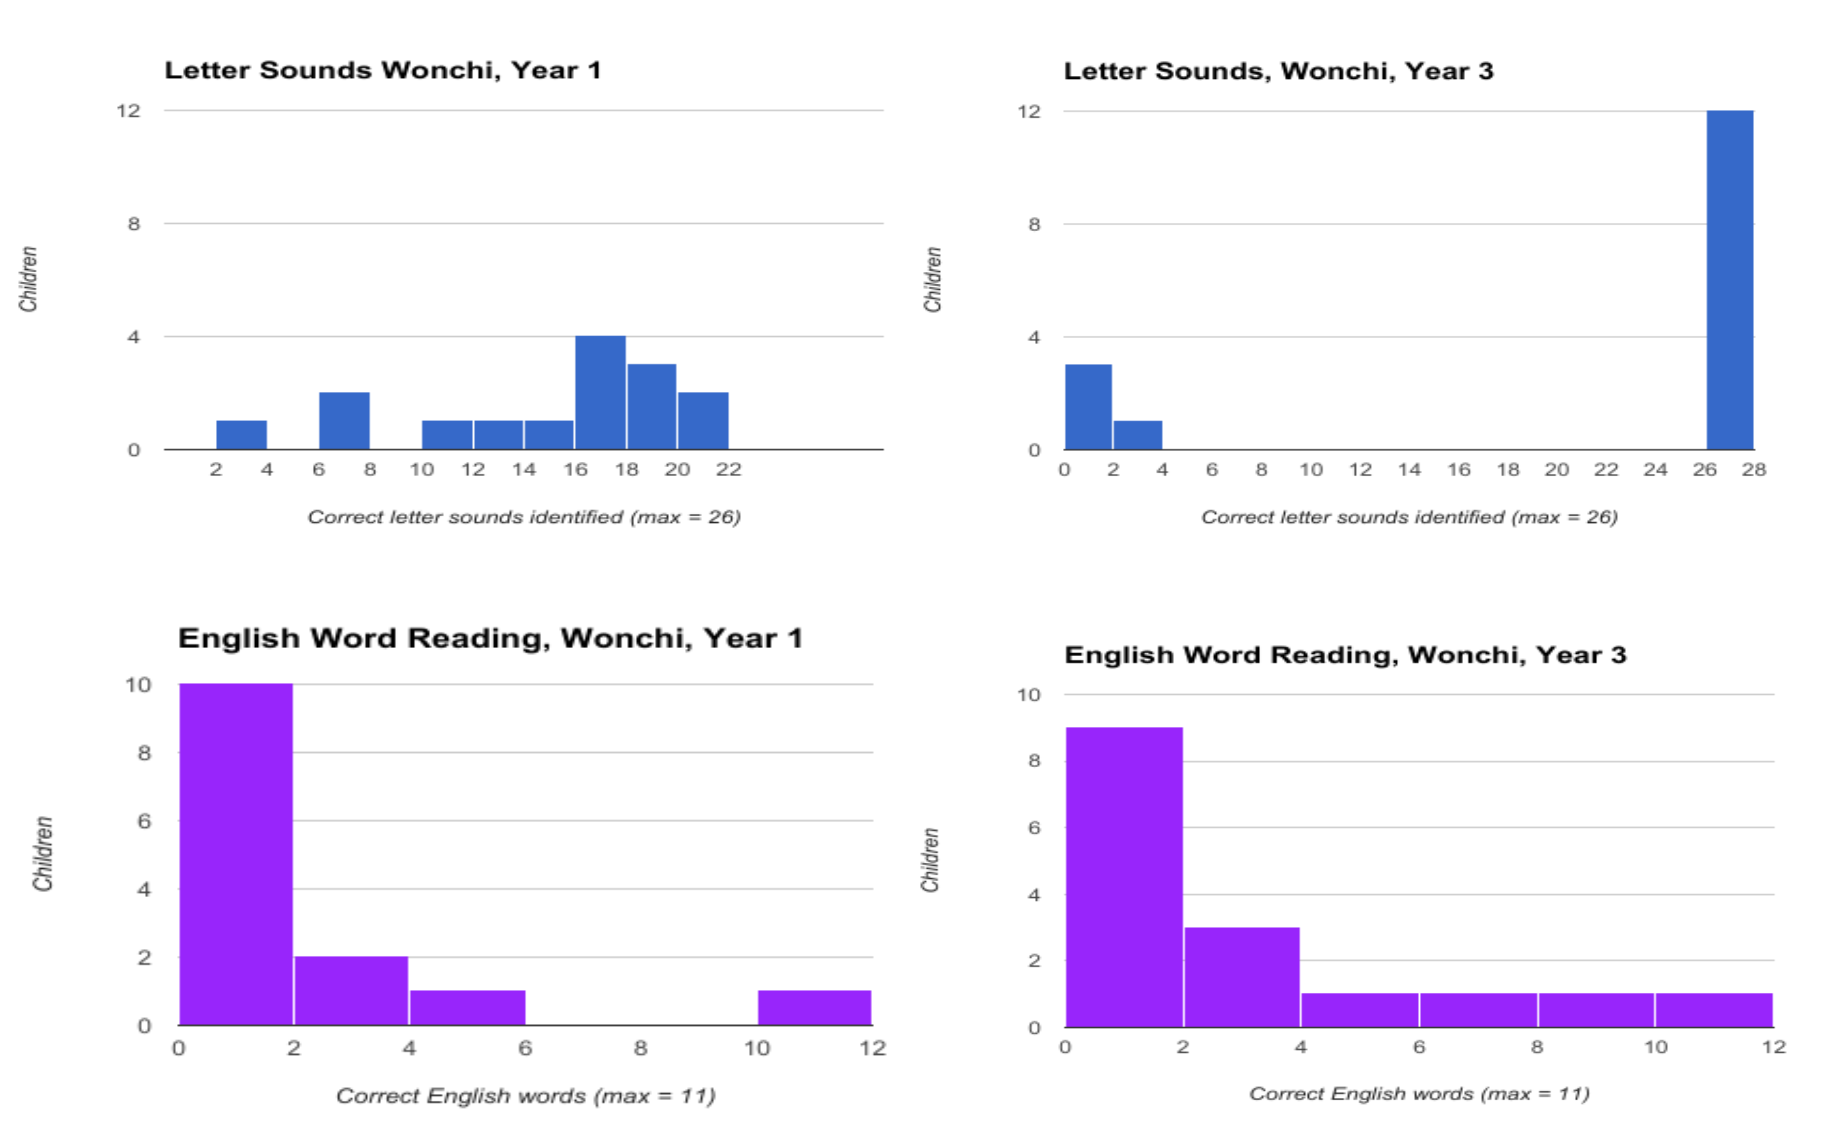 Children made progress, but many remained at 0 for word reading.